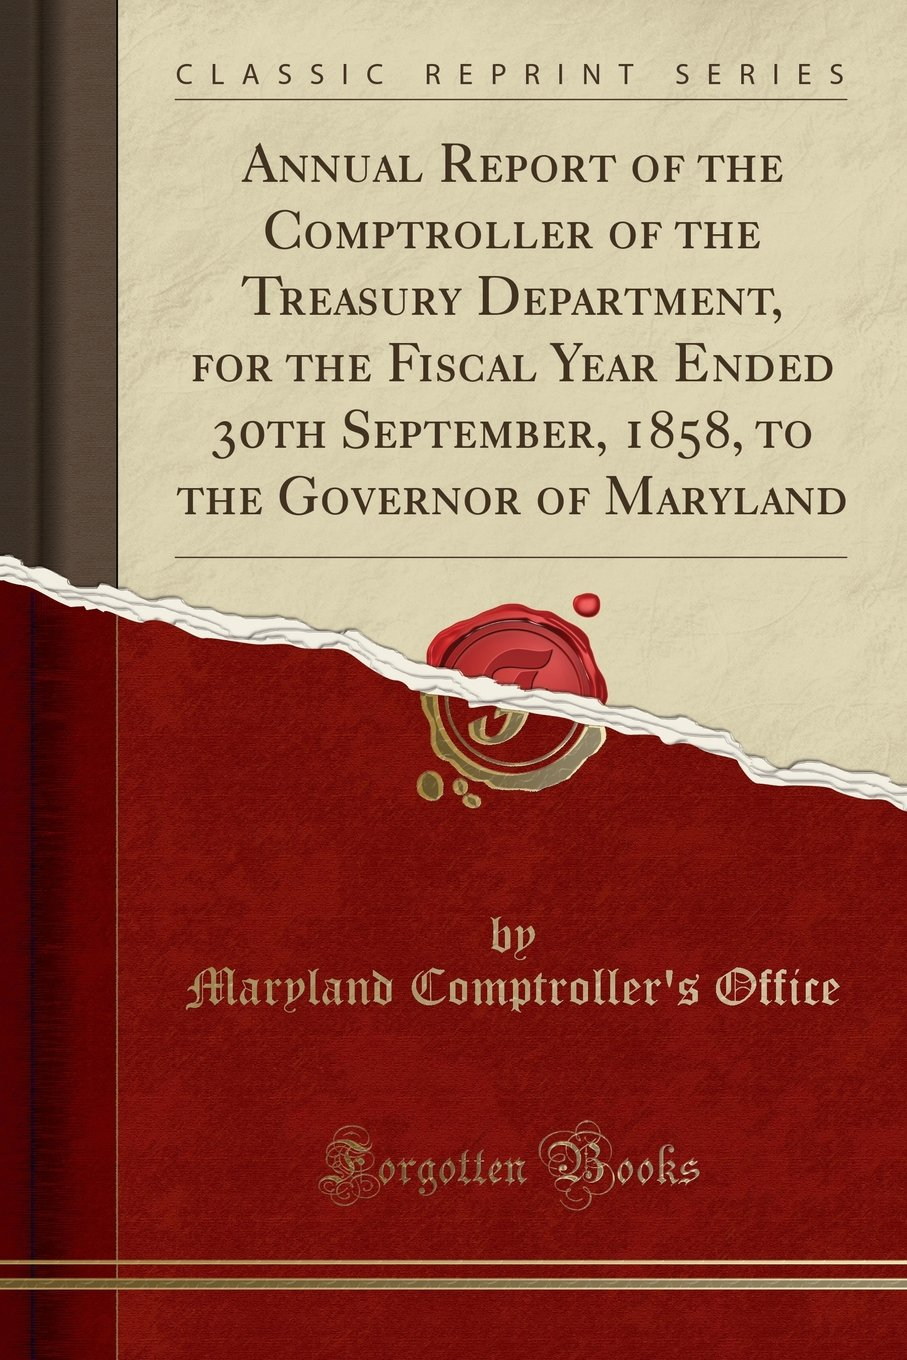 Annual Report of the Comptroller of the Treasury Department, for the Fiscal Year Ended 30th September, 1858, to the Governor of Maryland (Classic Reprint) pdf epub